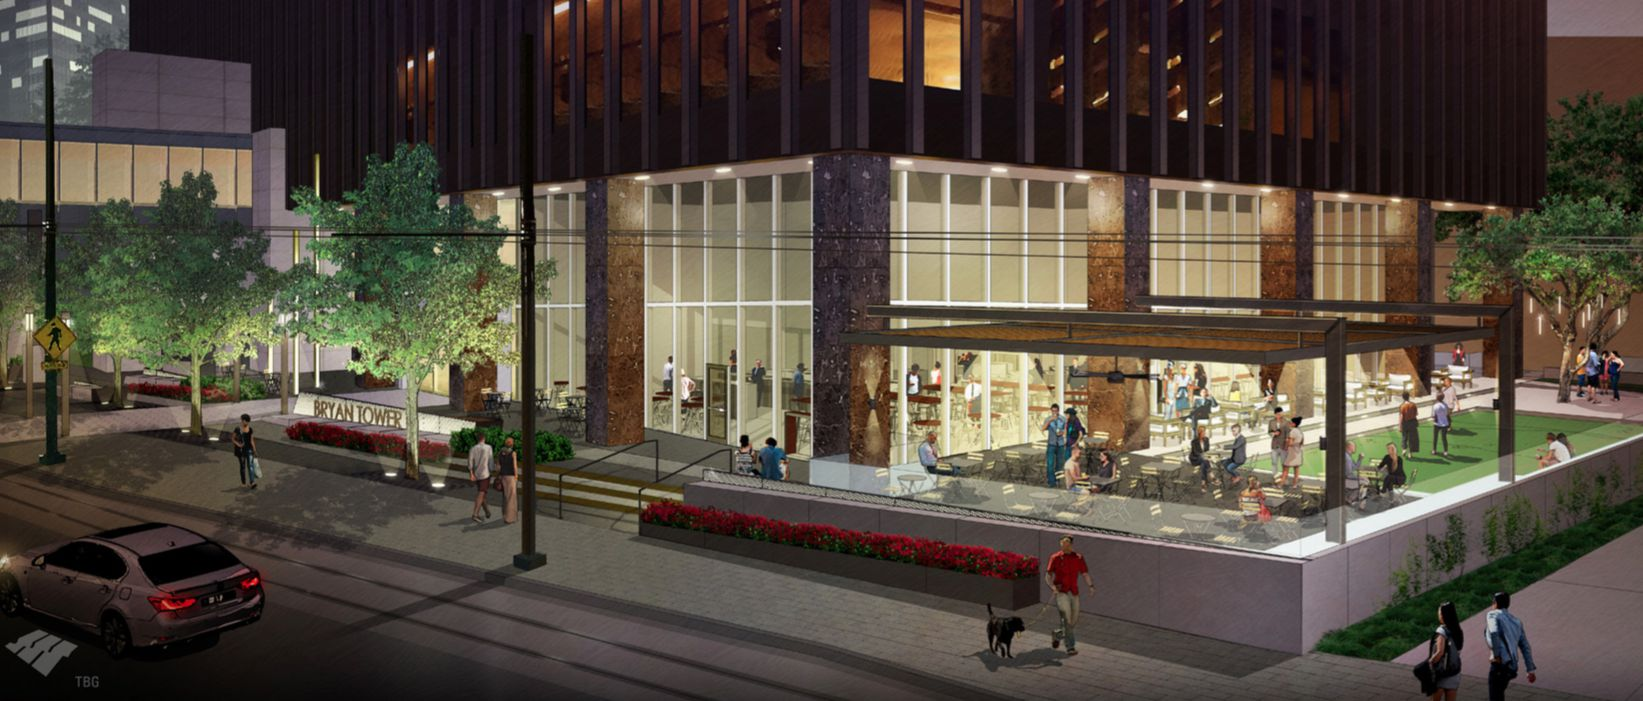 A pending redo at downtown Dallas' landmark Bryan Tower will add outdoor gathering and event spaces and new retail and restaurant spots inside the 45-year-old high-rise.